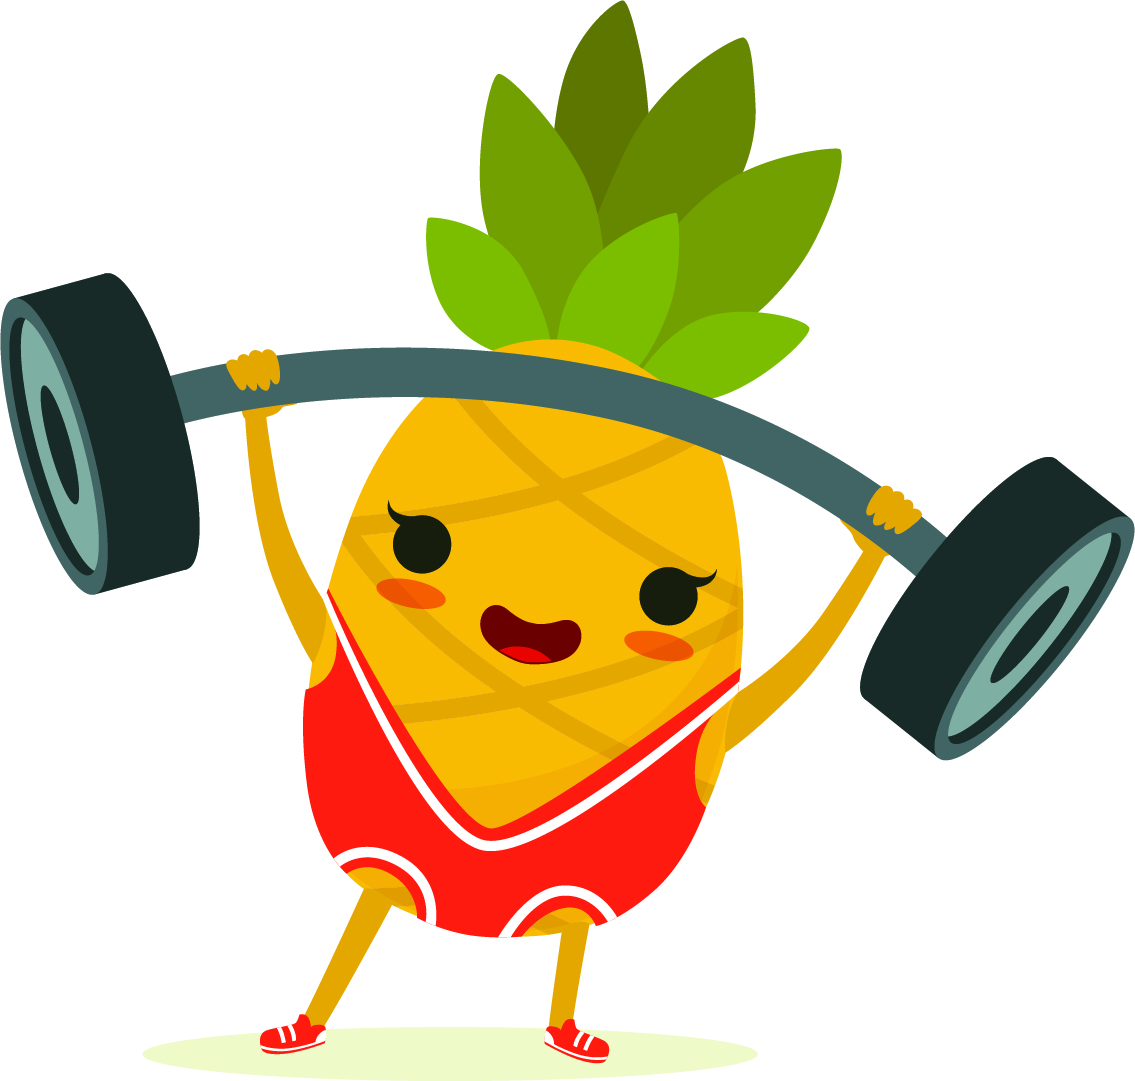 Illustration of a pineapple wearing weightlifting uniform and raising a barbell.